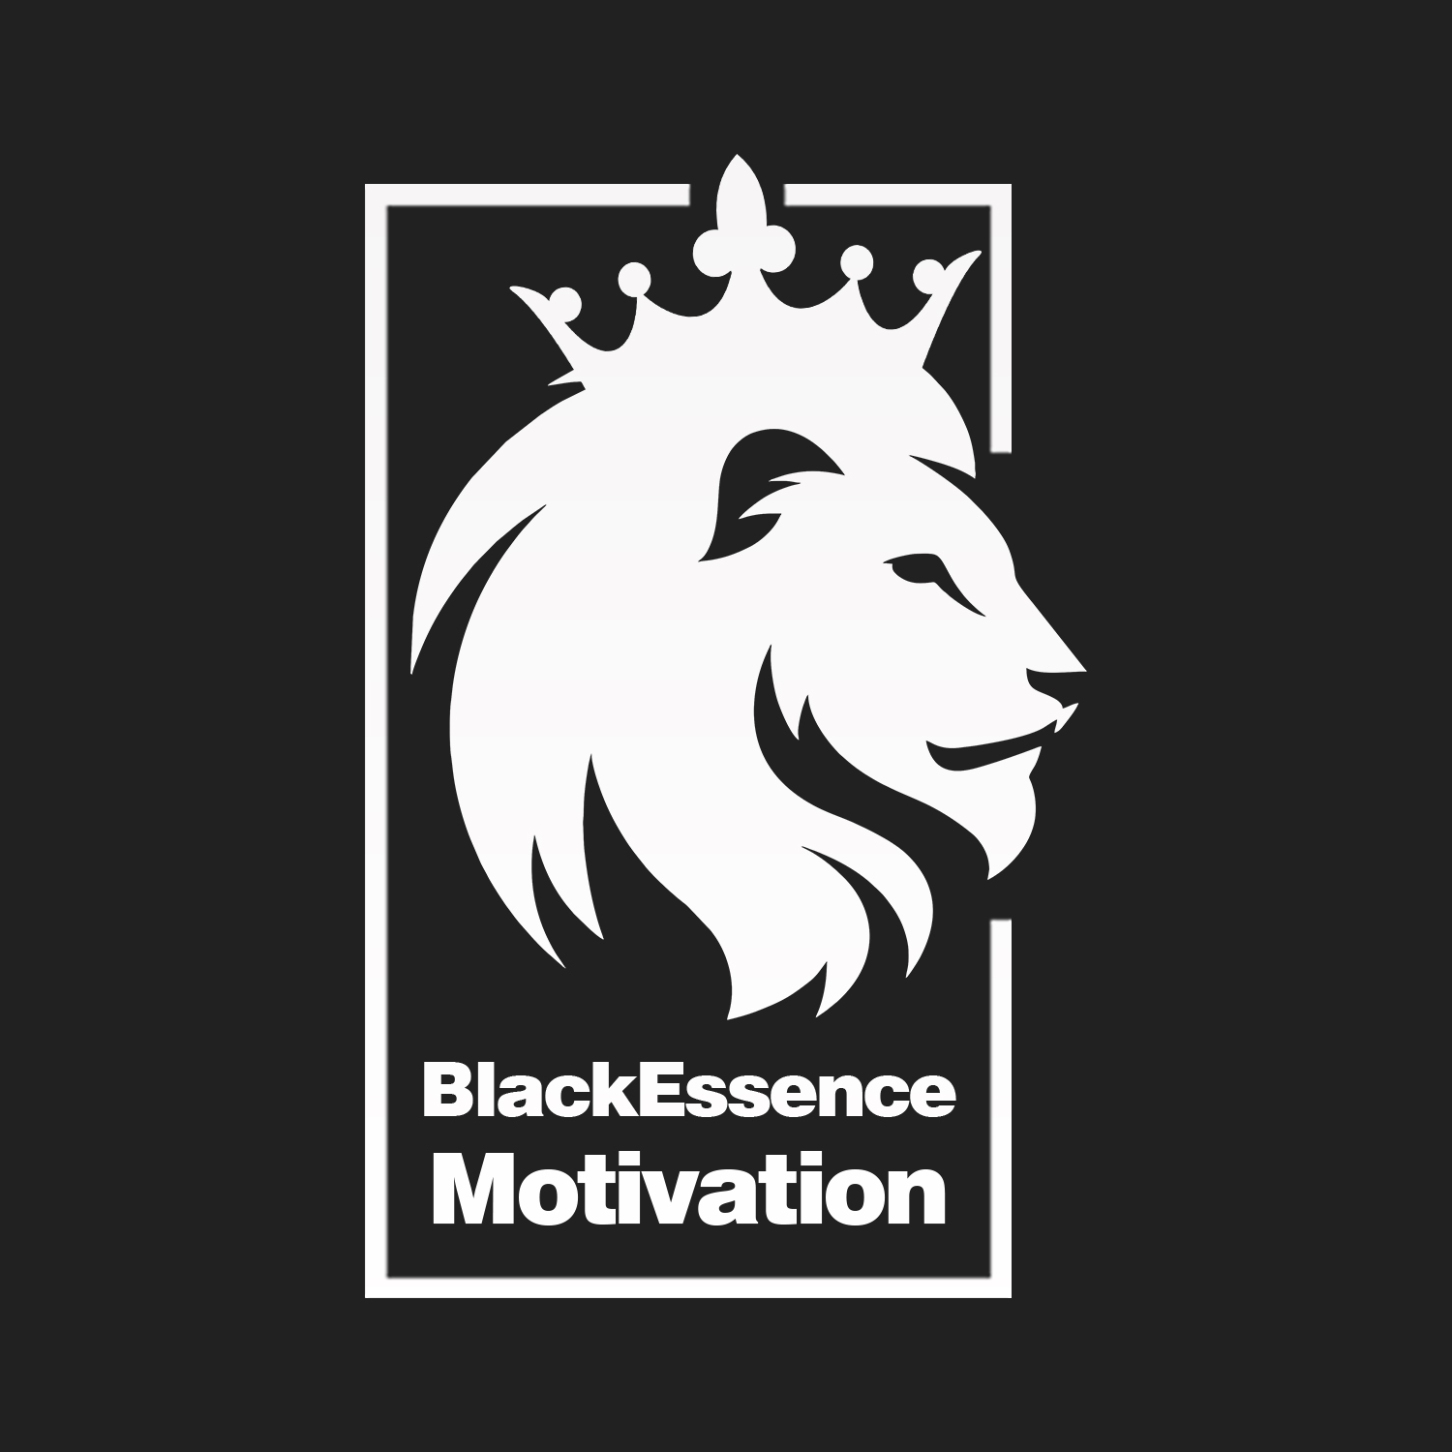 BlackEssence Motivation white logo.jpg